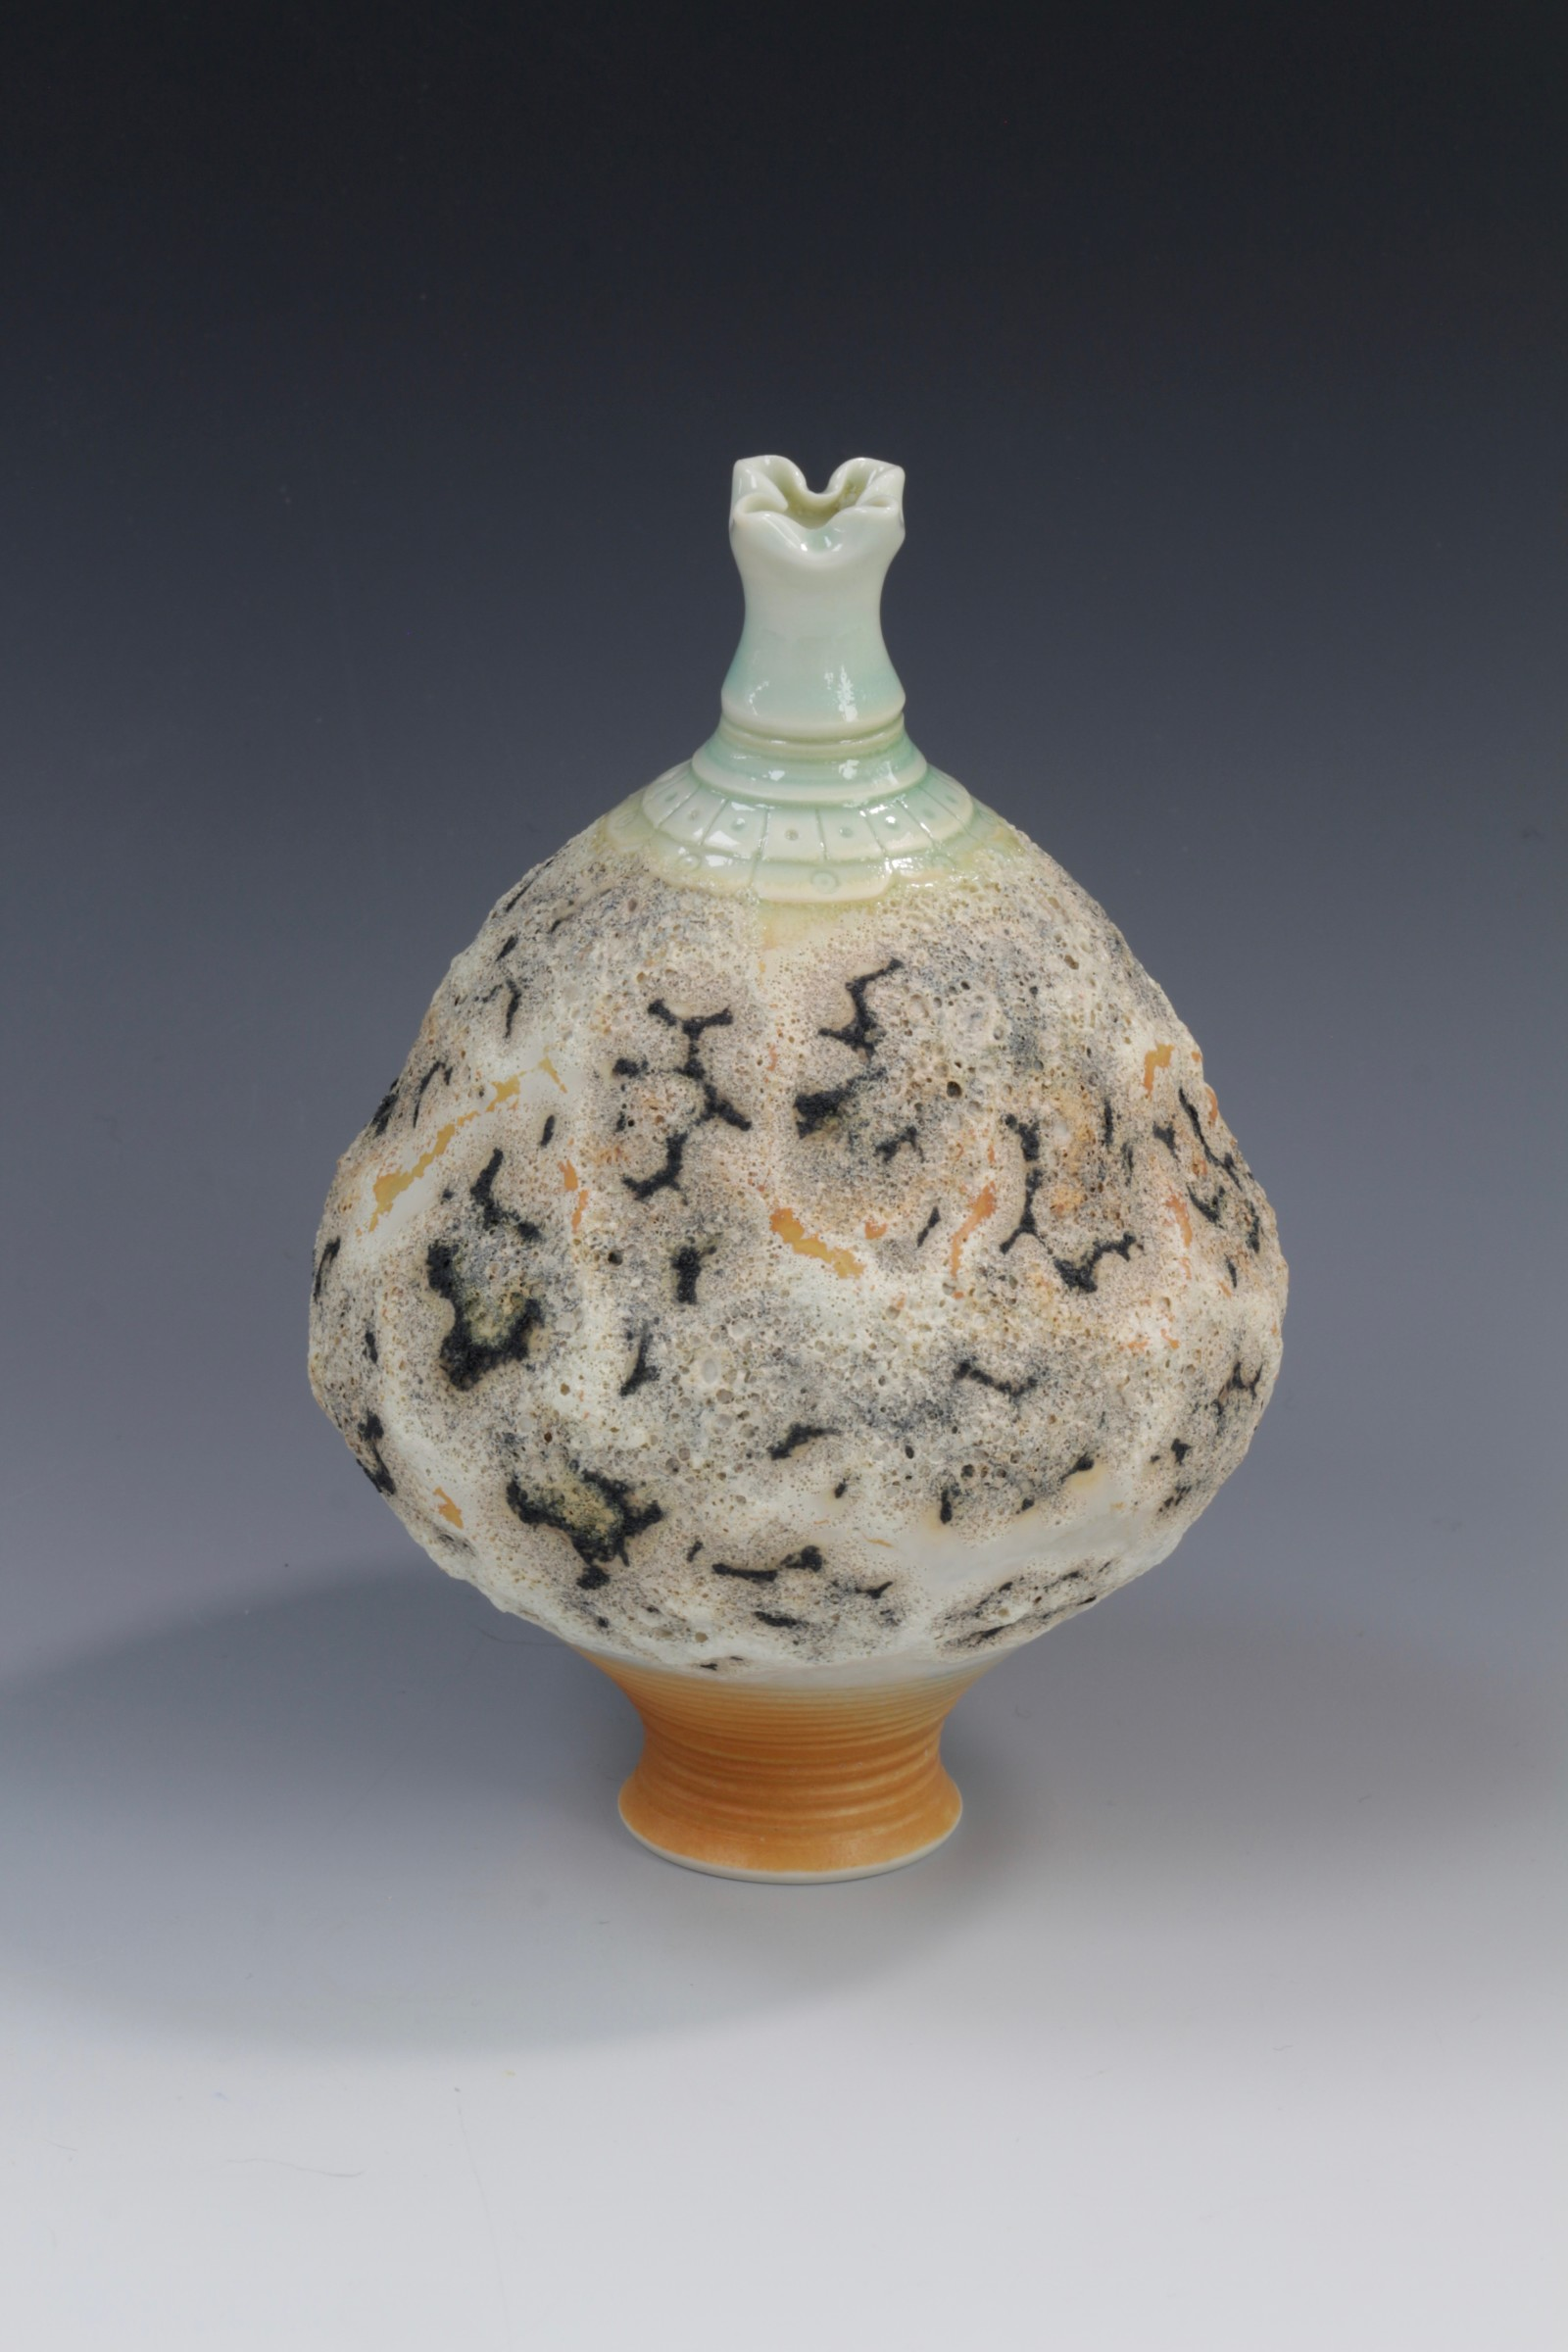 "<span class=""link fancybox-details-link""><a href=""/artists/61-geoffrey-swindell/works/7079-geoffrey-swindell-bud-vase-2020/"">View Detail Page</a></span><div class=""artist""><strong>Geoffrey Swindell</strong></div> <div class=""title""><em>Bud Vase</em>, 2020</div> <div class=""signed_and_dated"">Stamped on the bottom</div> <div class=""medium"">Porcelain</div><div class=""copyright_line"">Own Art: £ 17 x 10 Months, 0% APR</div>"